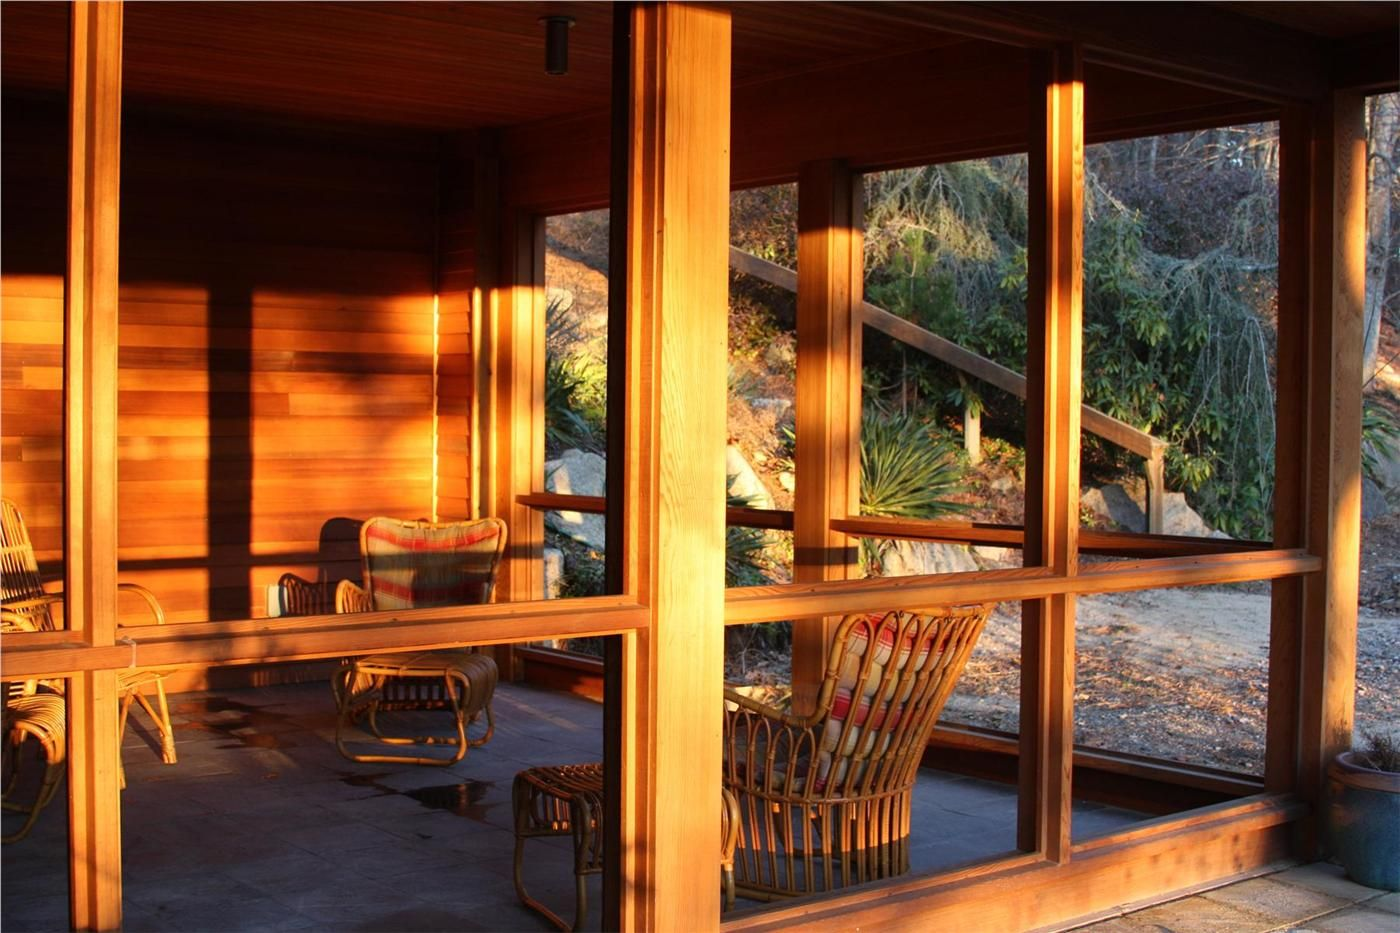 Screened porch with sunset light in Wellfleet Cape cod